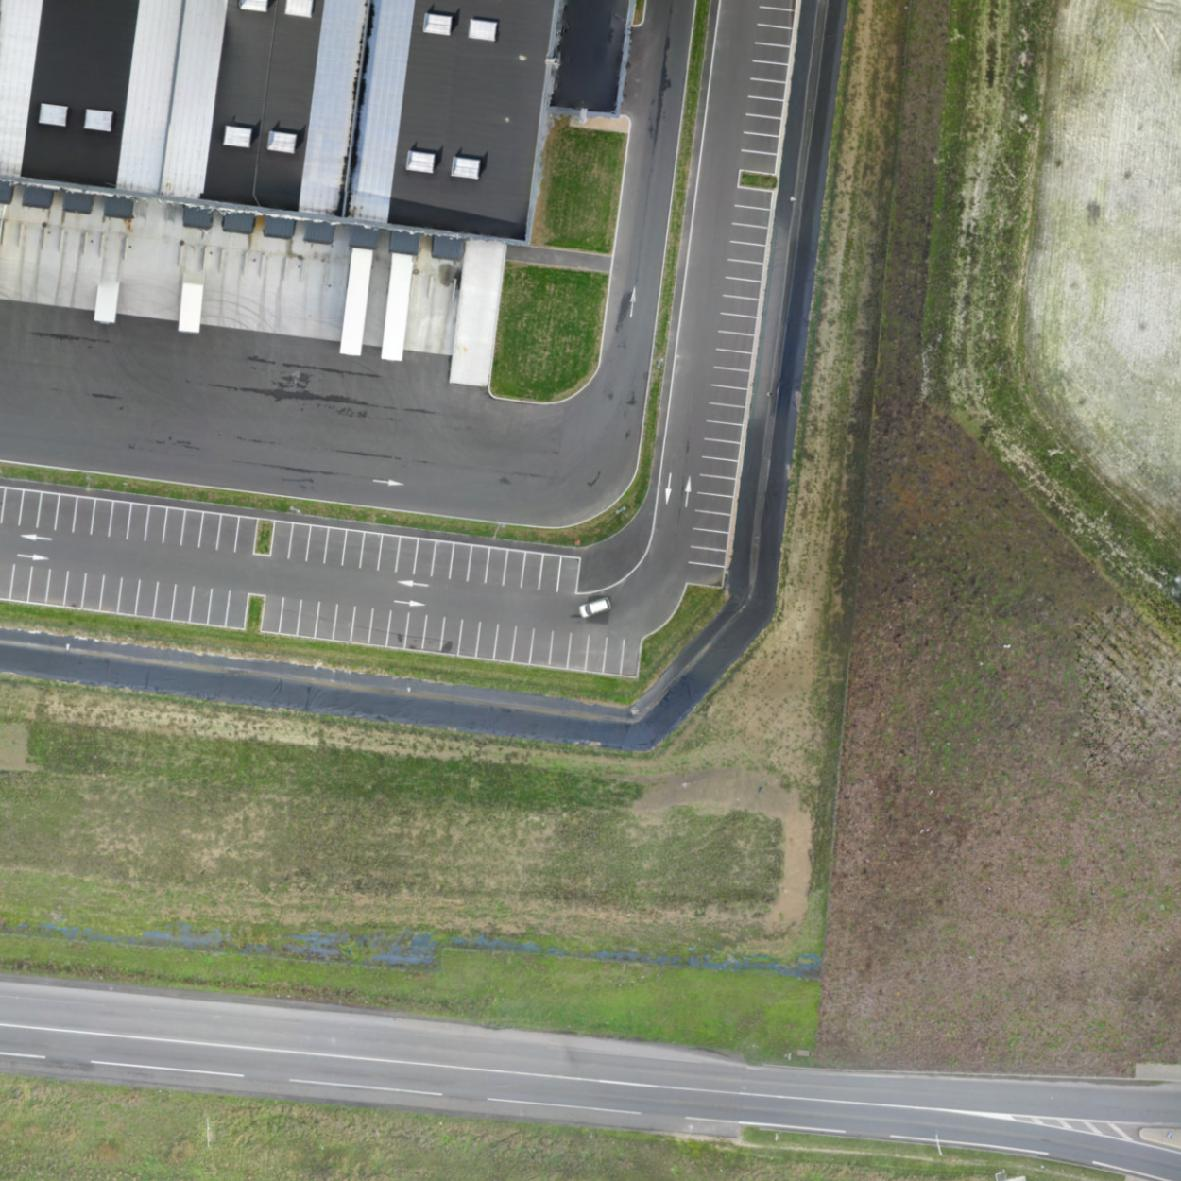 exemple orthophoto drone ebee topographie